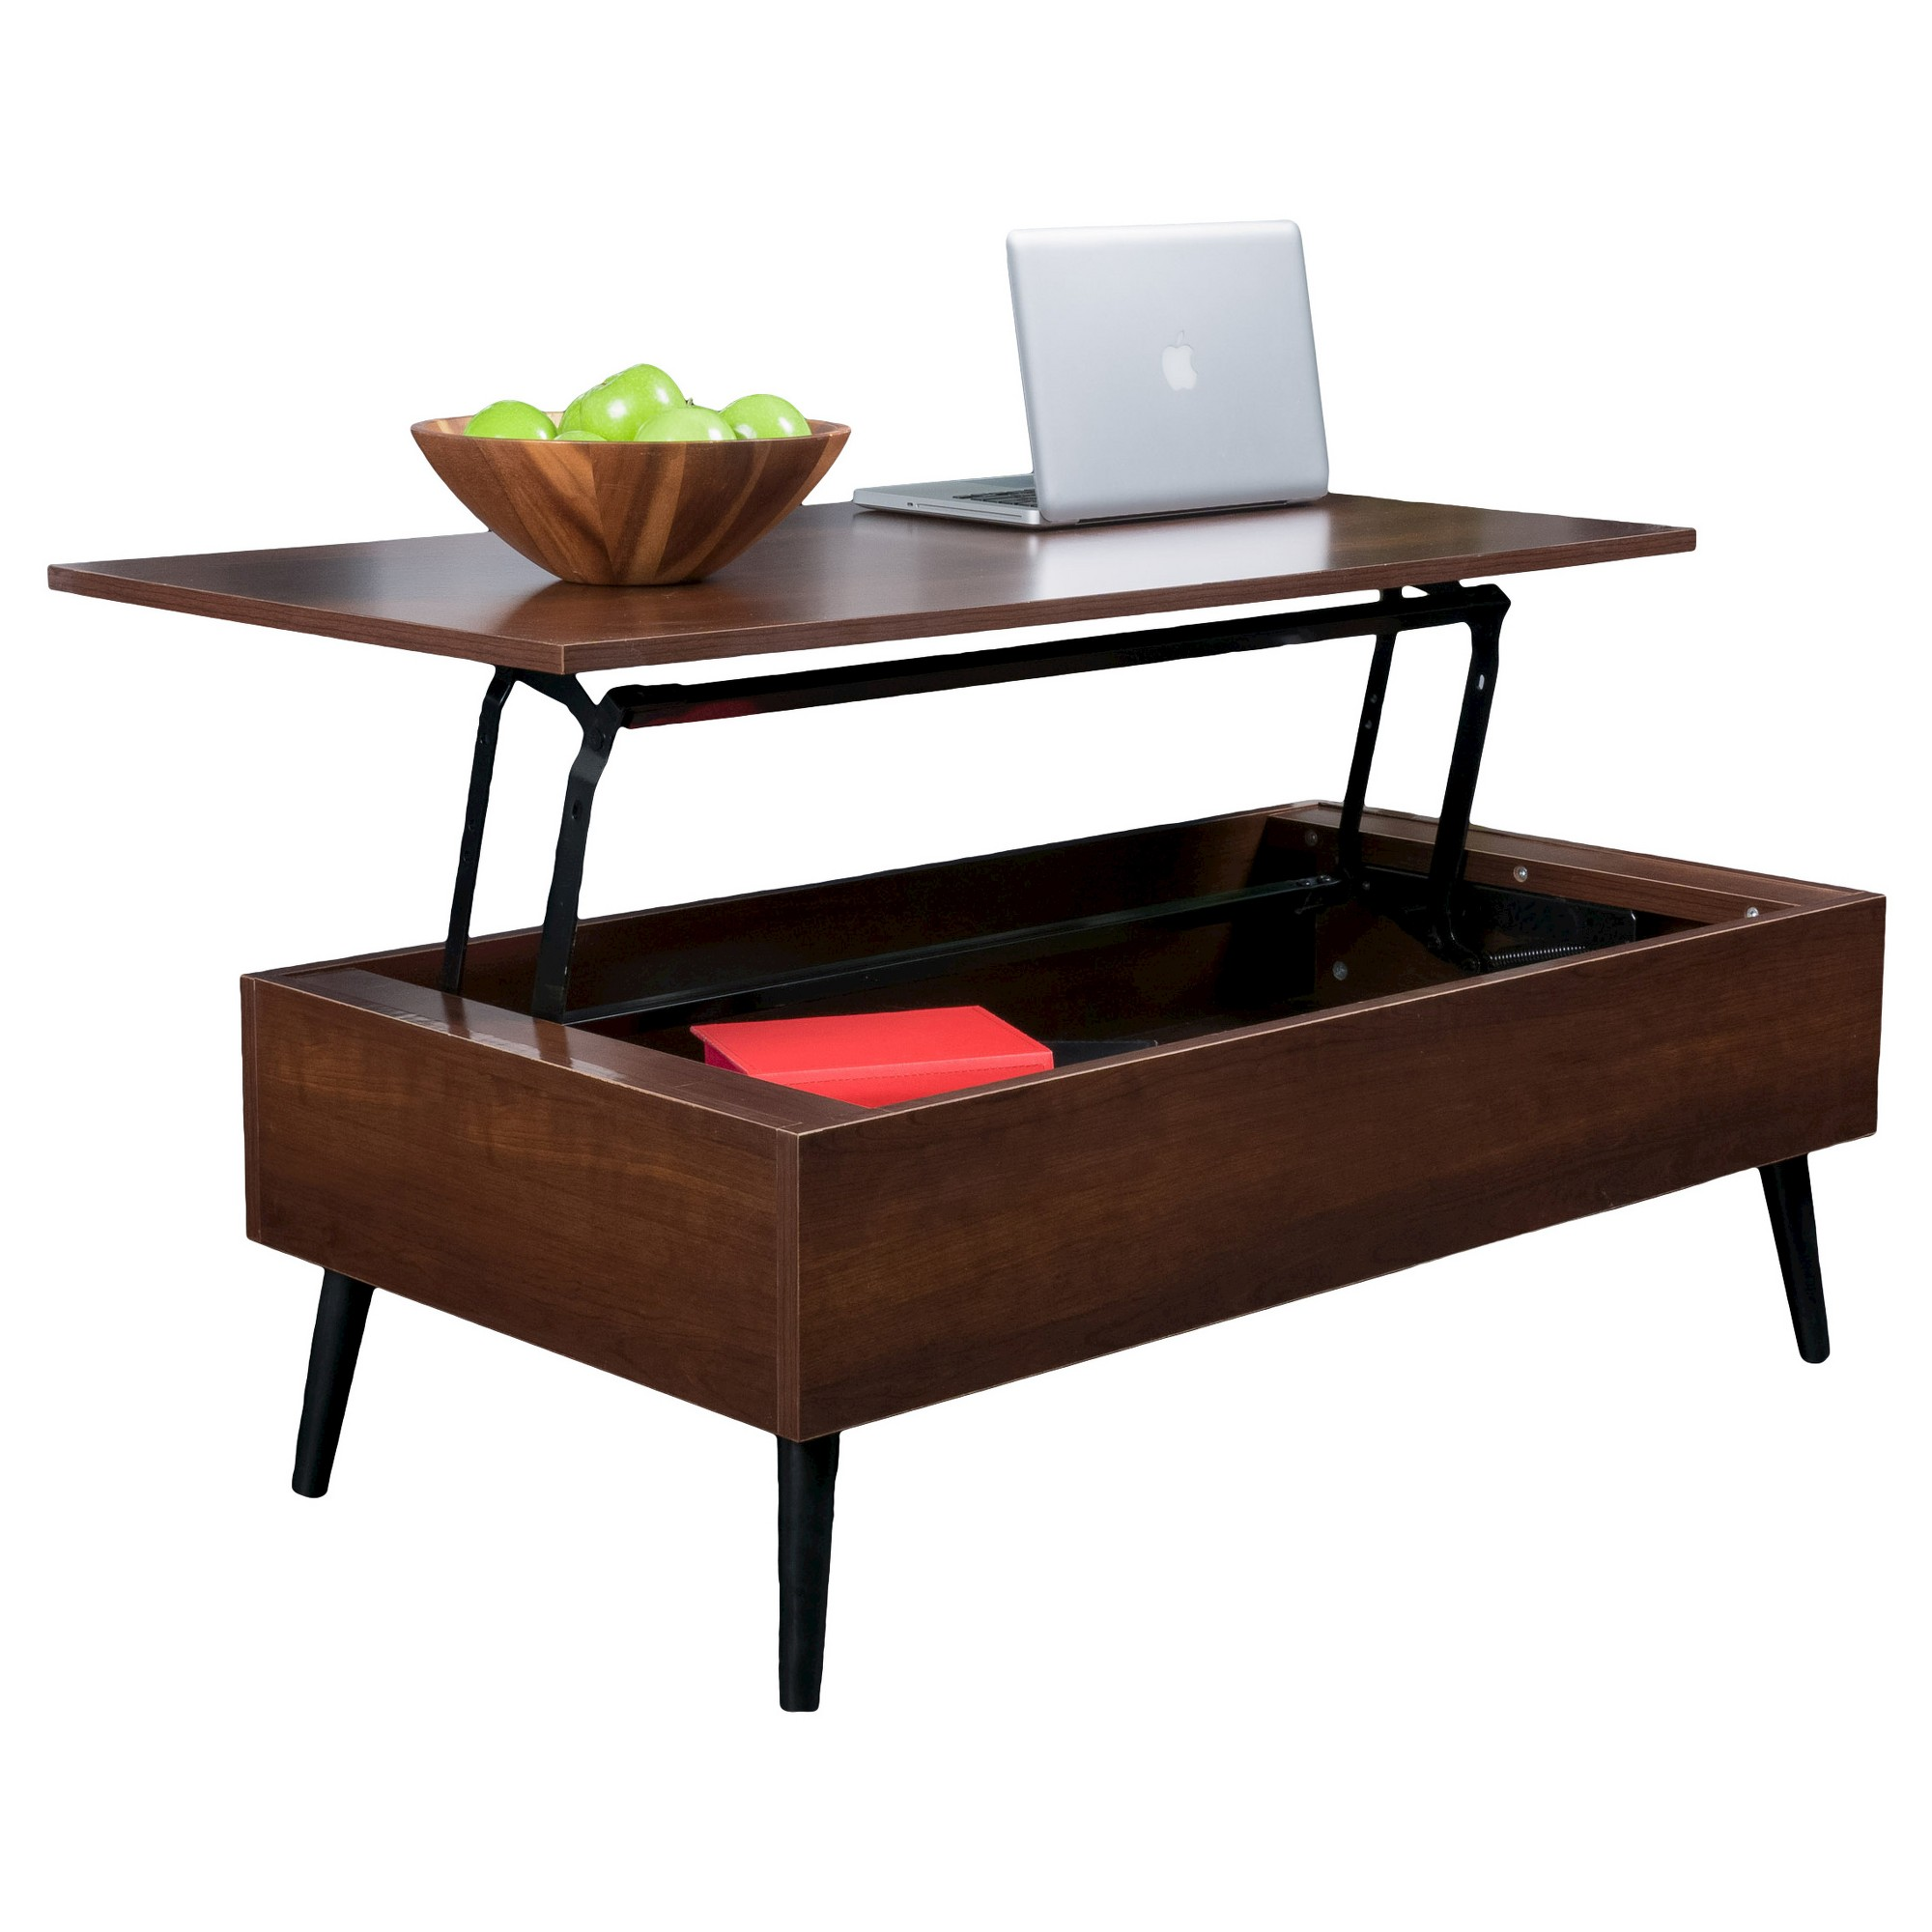 Christopher knight home elliot wood lifttop storage